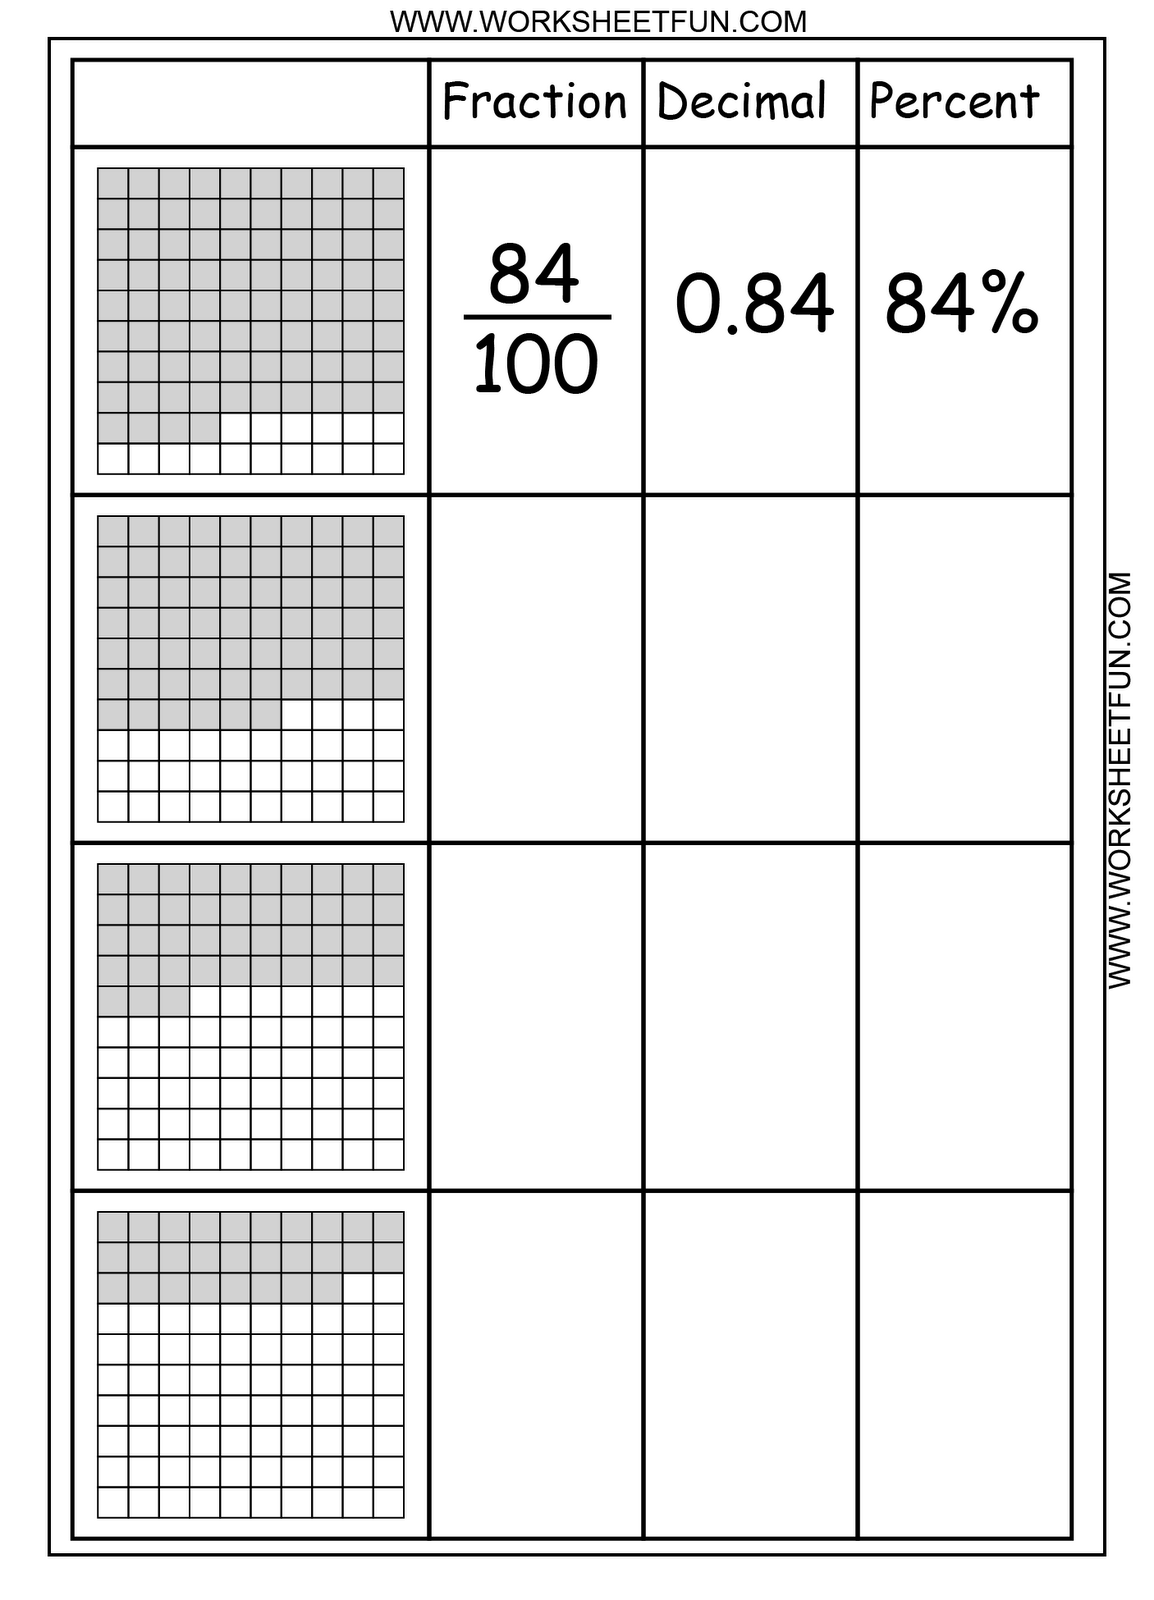 math worksheet : 1000 images about fractions decimals percents on pinterest  : Percent To Fraction Worksheet